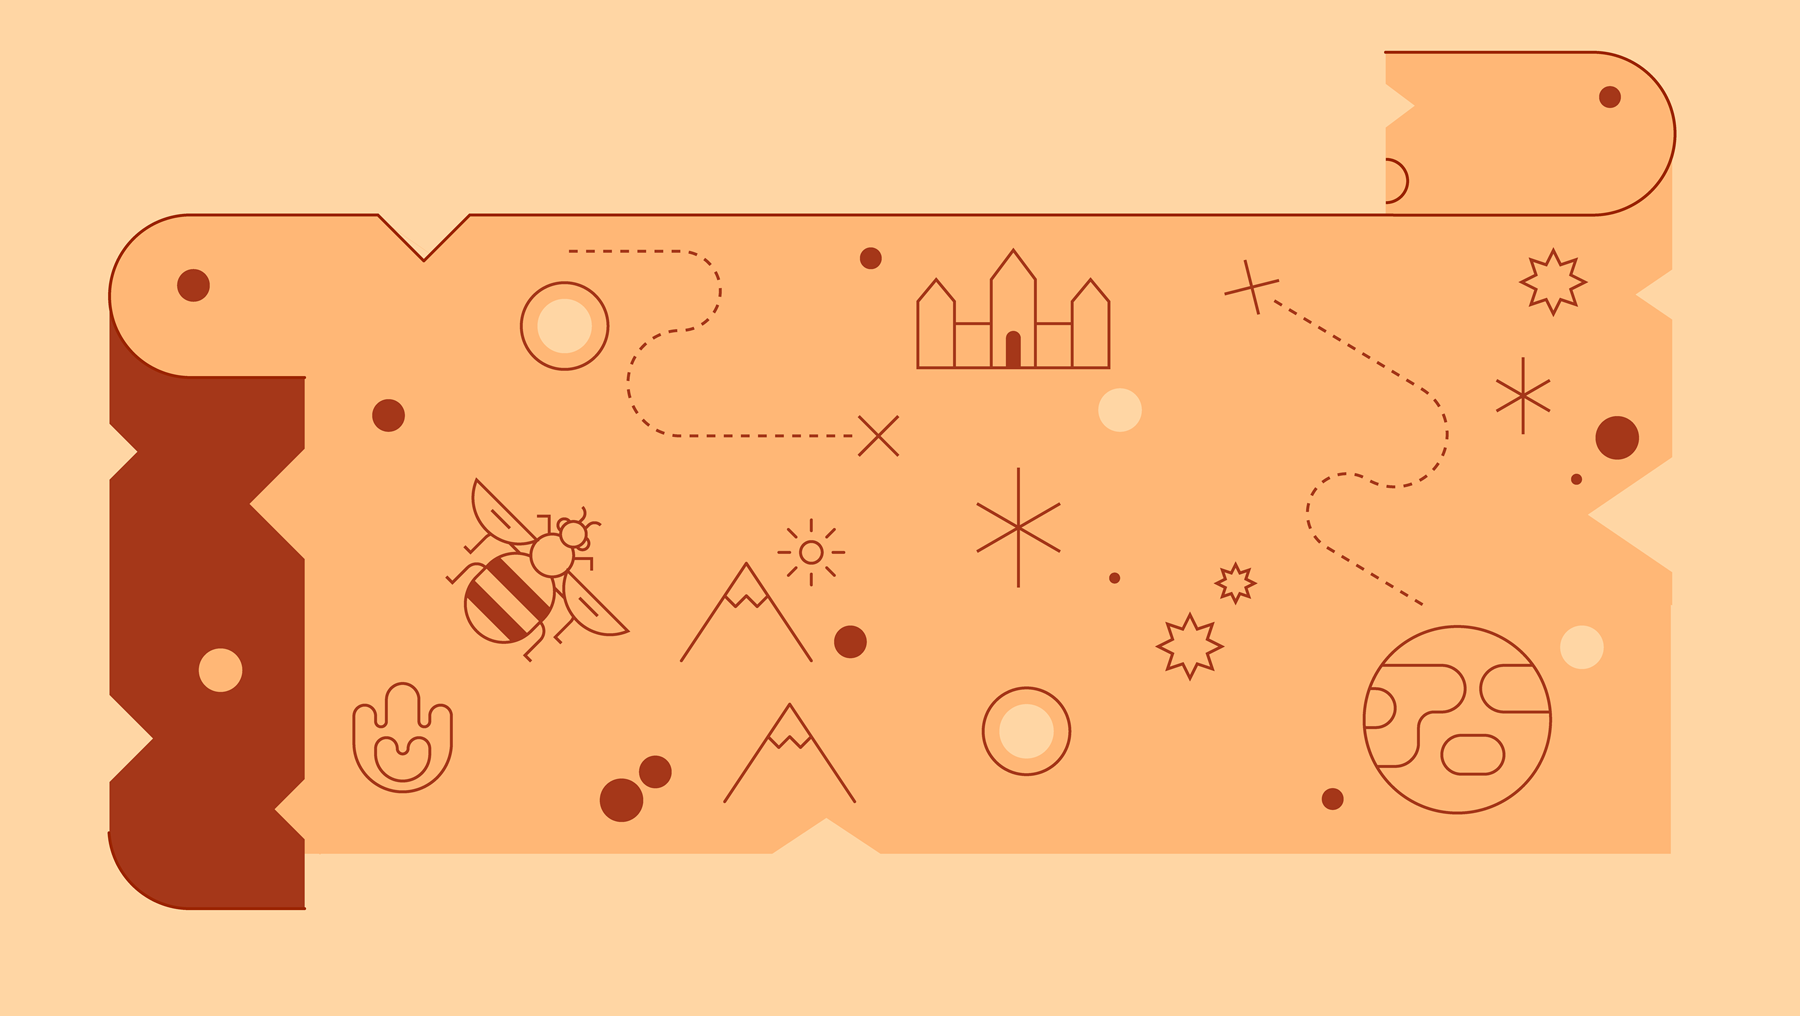 An illustration of leather money, decorated with animals and celestial objects.